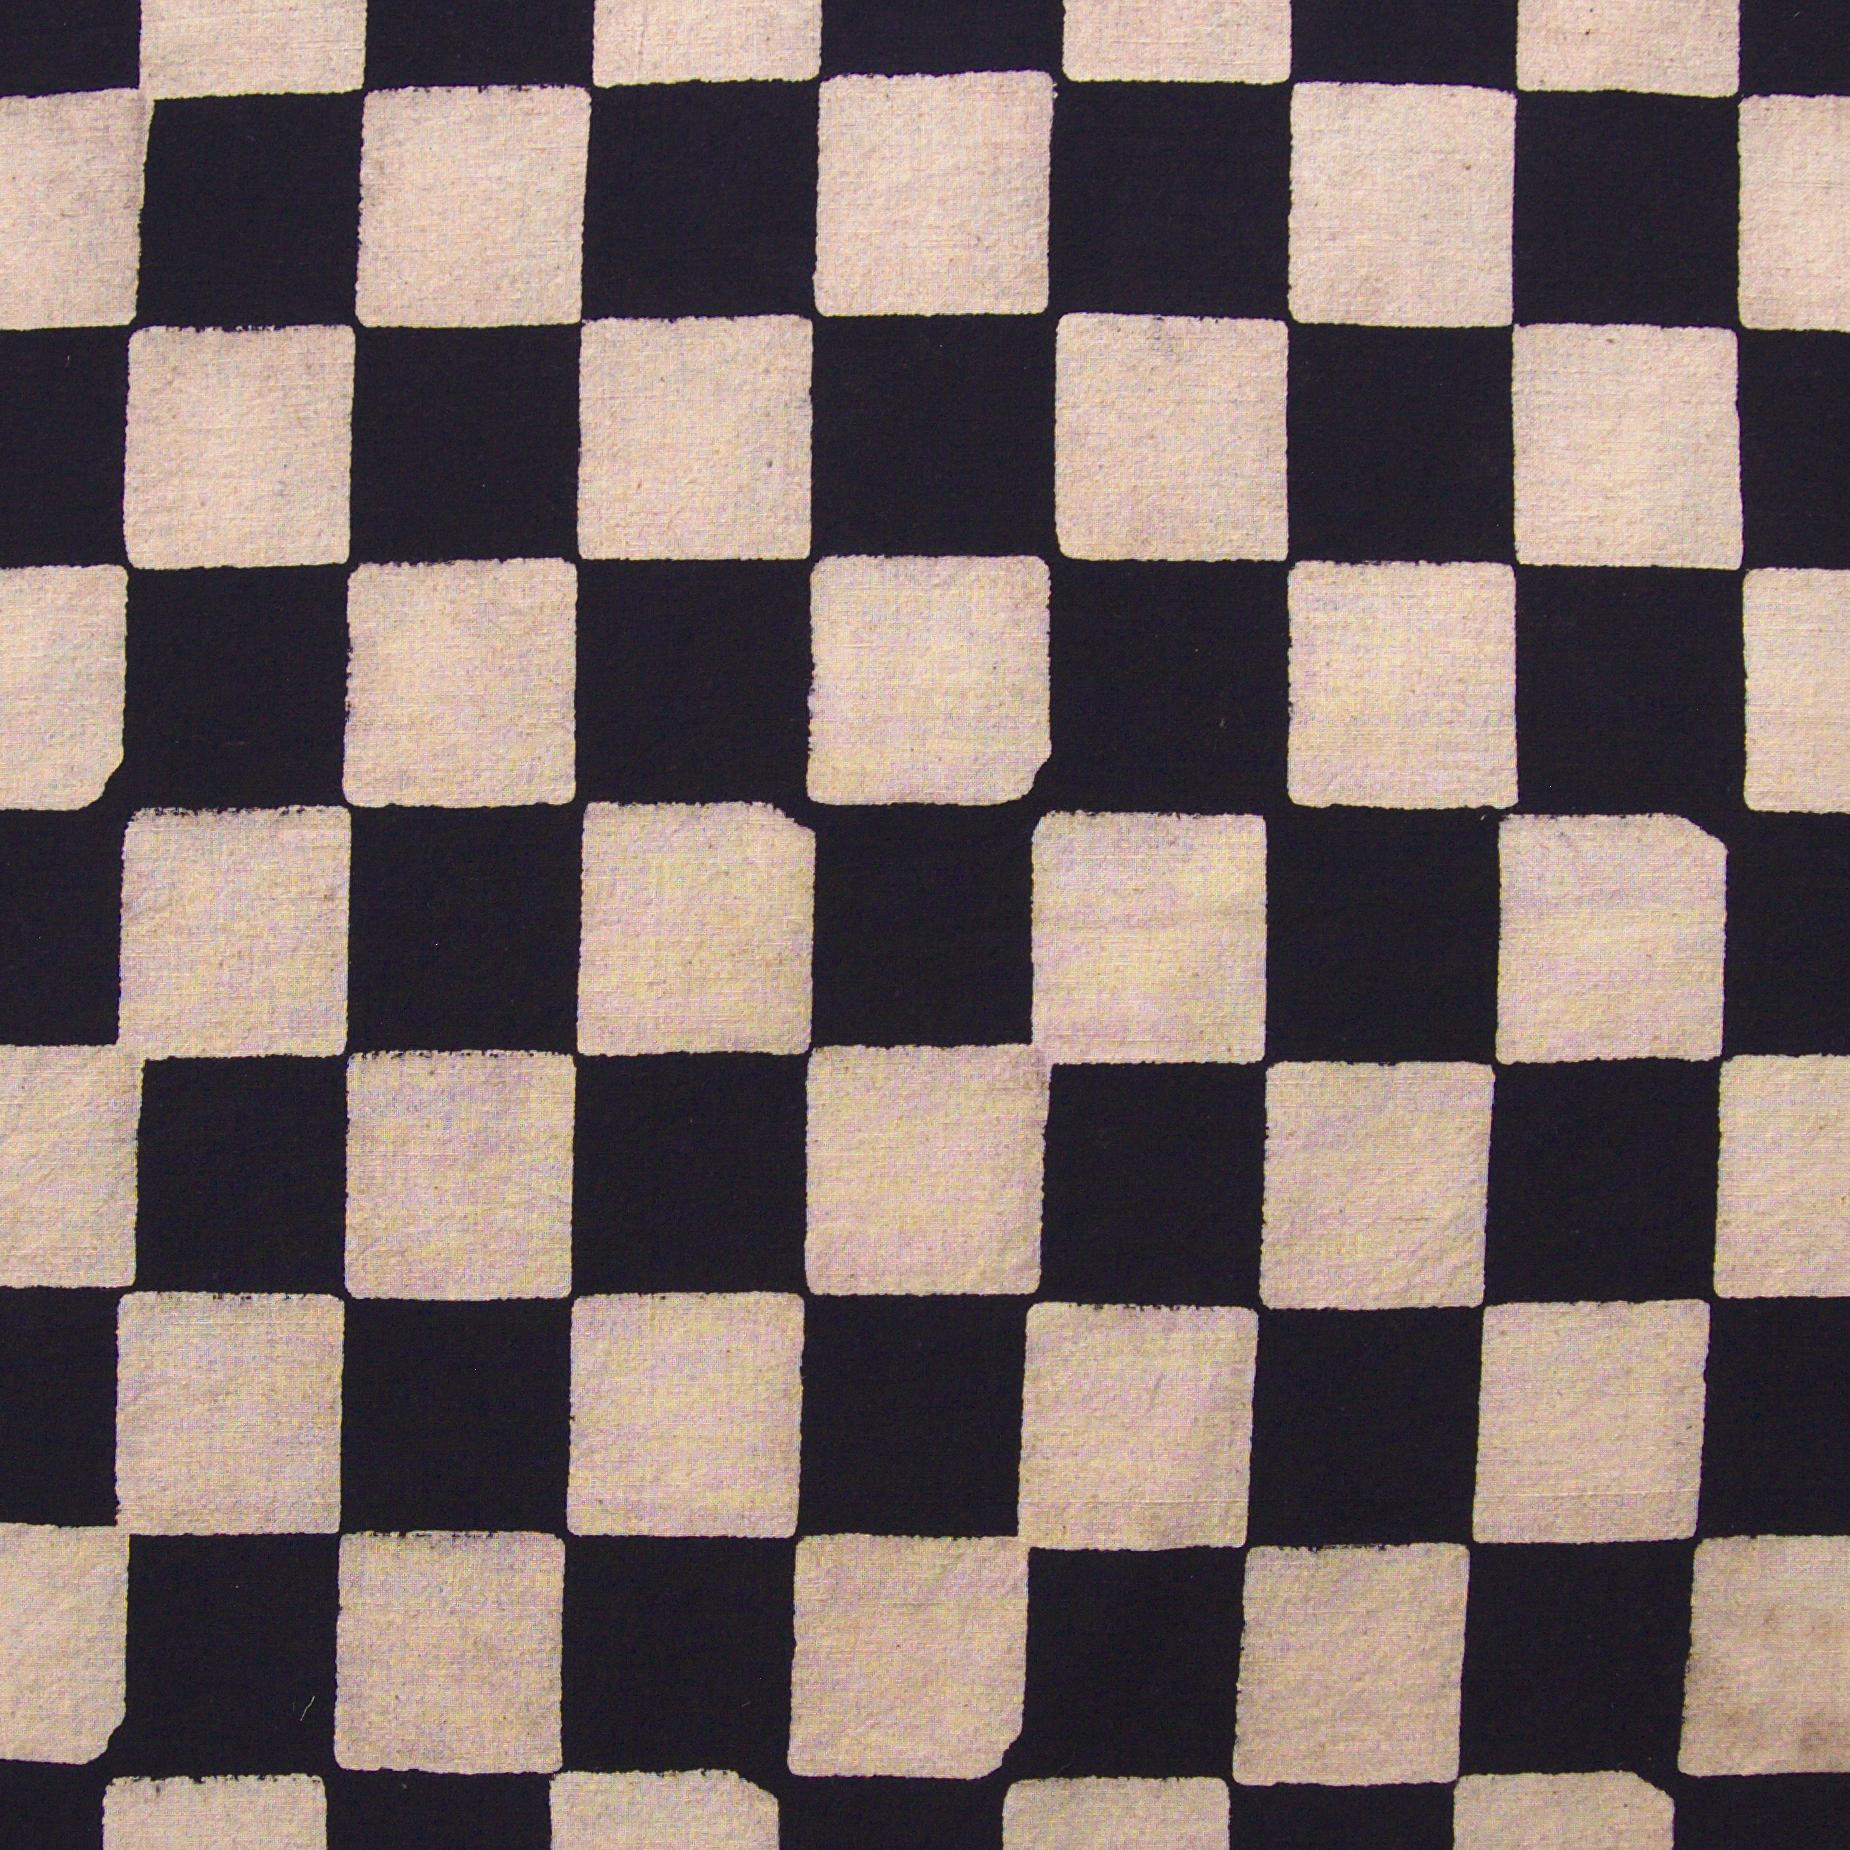 100% Block-Printed Cotton Fabric From India- Ajrak - Black White Resist Chequers Print - Contrast - Live